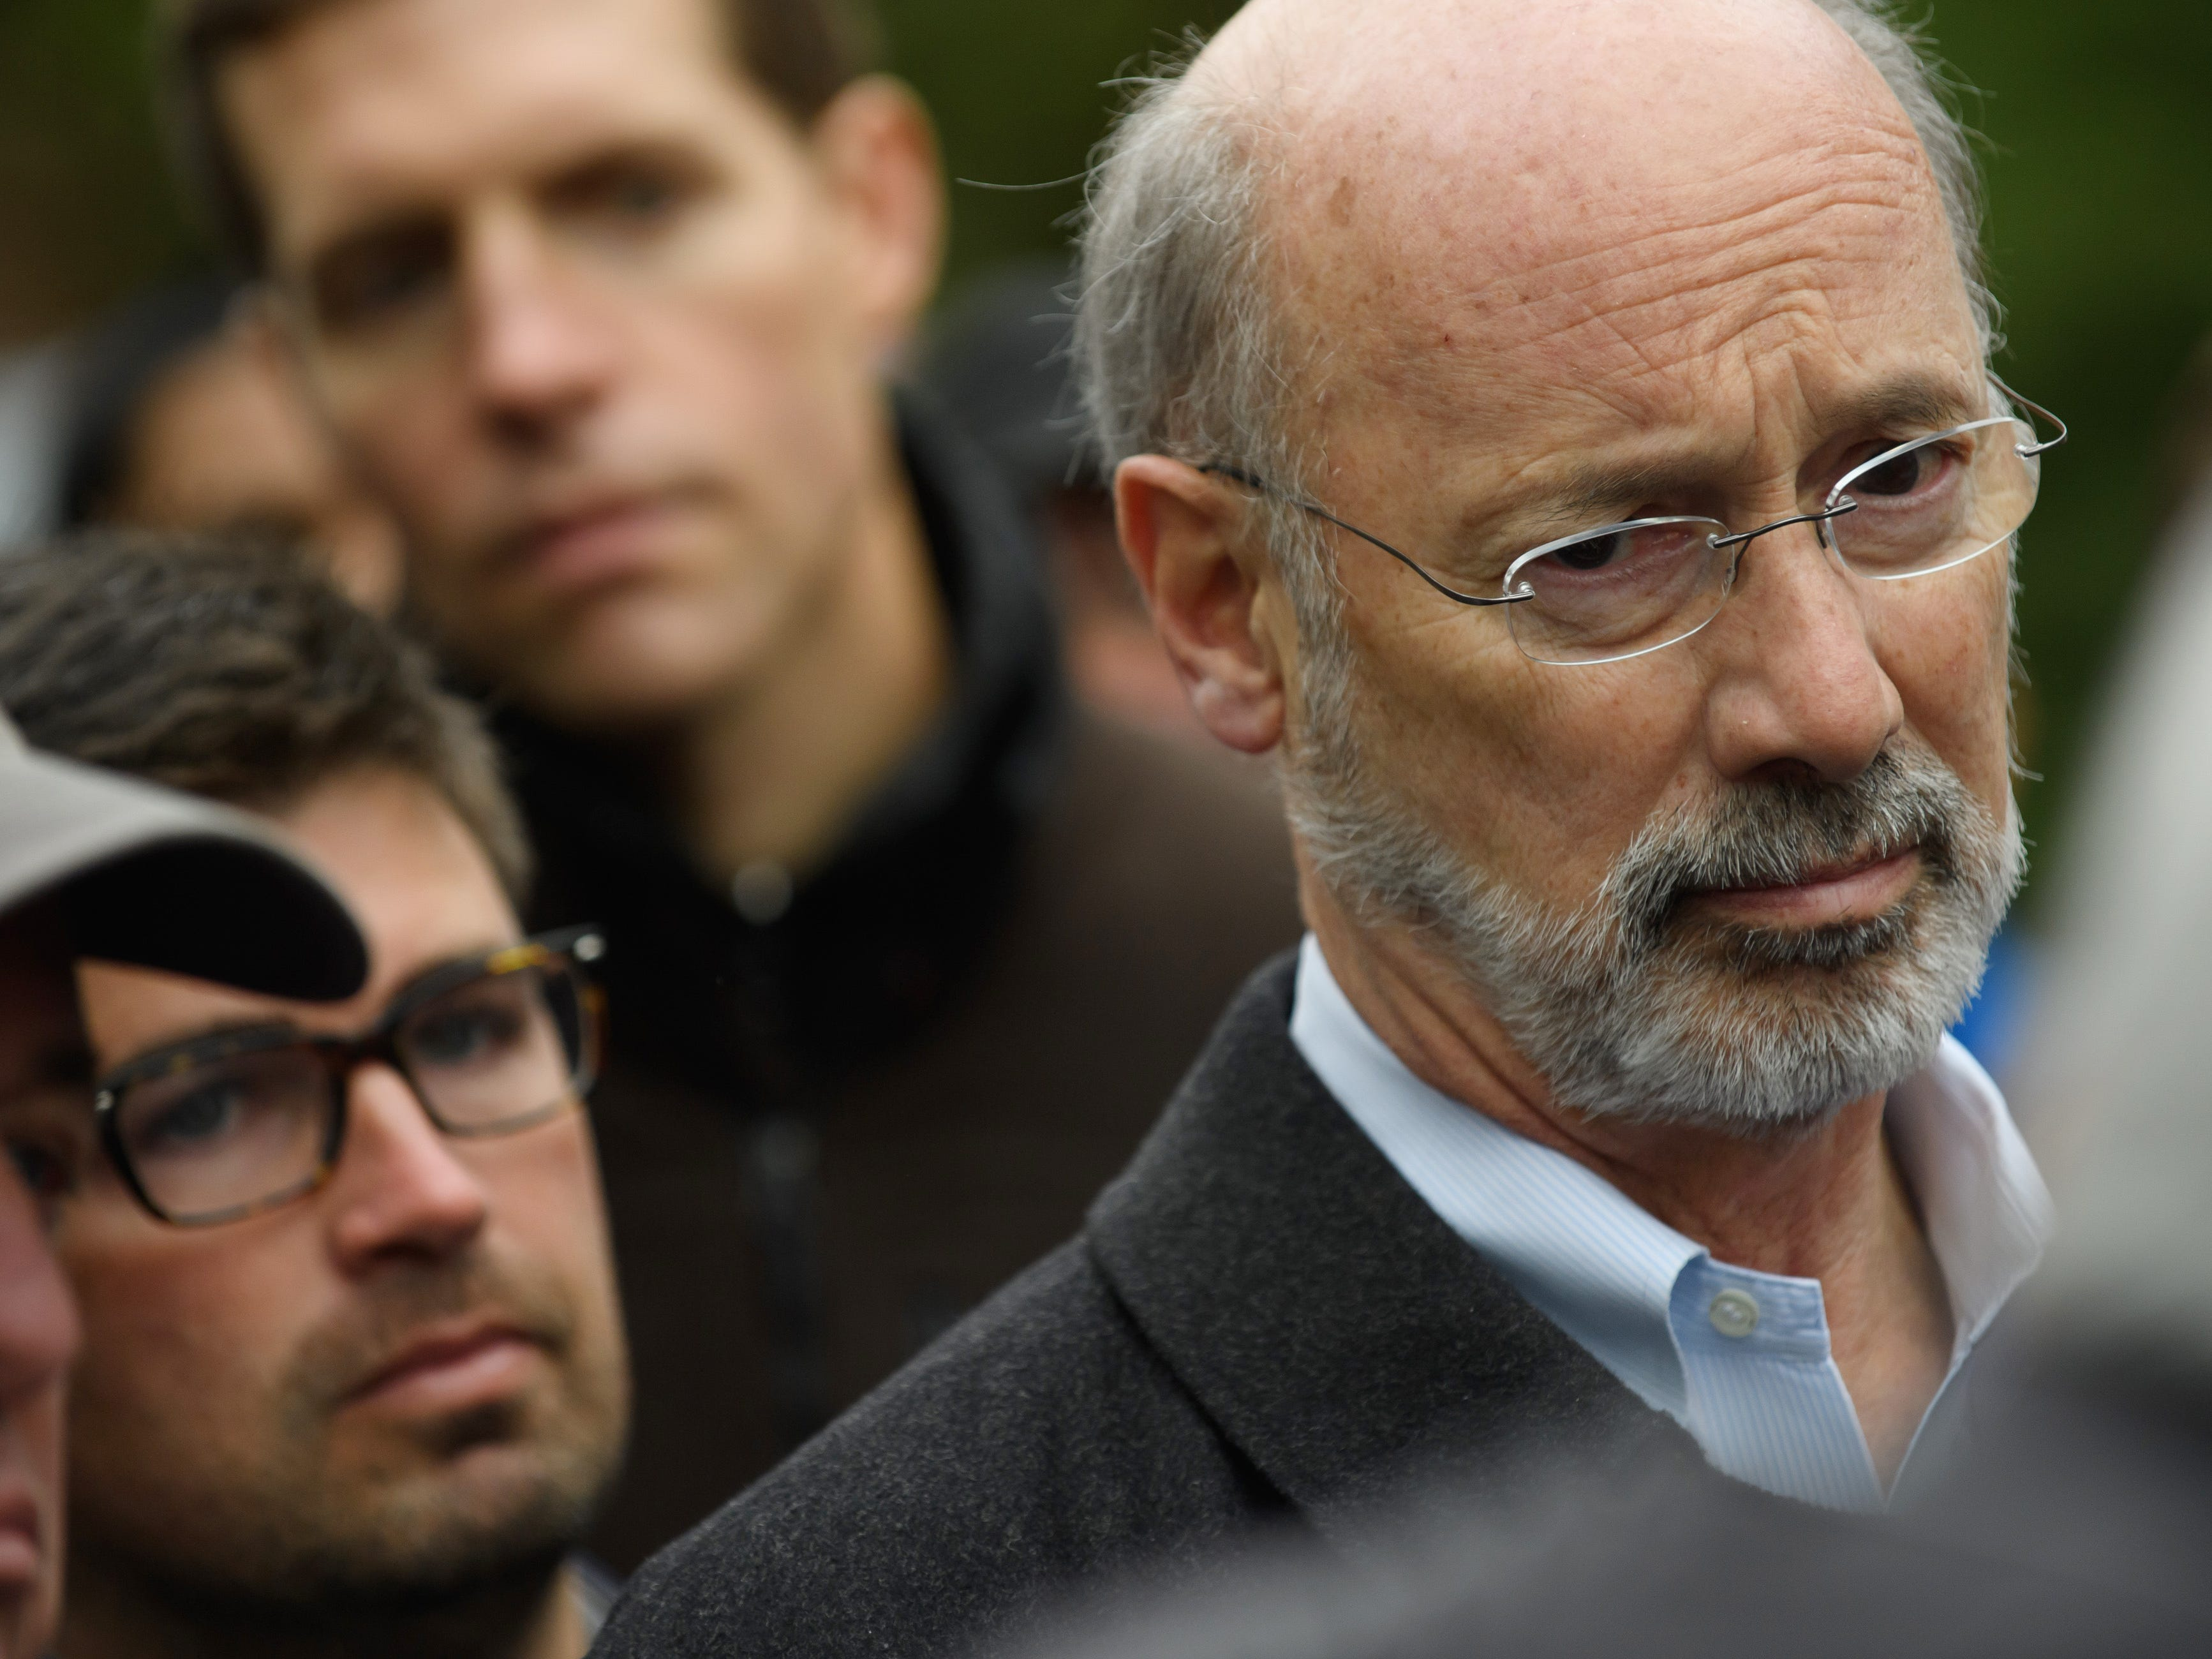 Pennsylvania Governor Tom Wolf at the site of a mass shooting at the Tree of Life Synagogue.